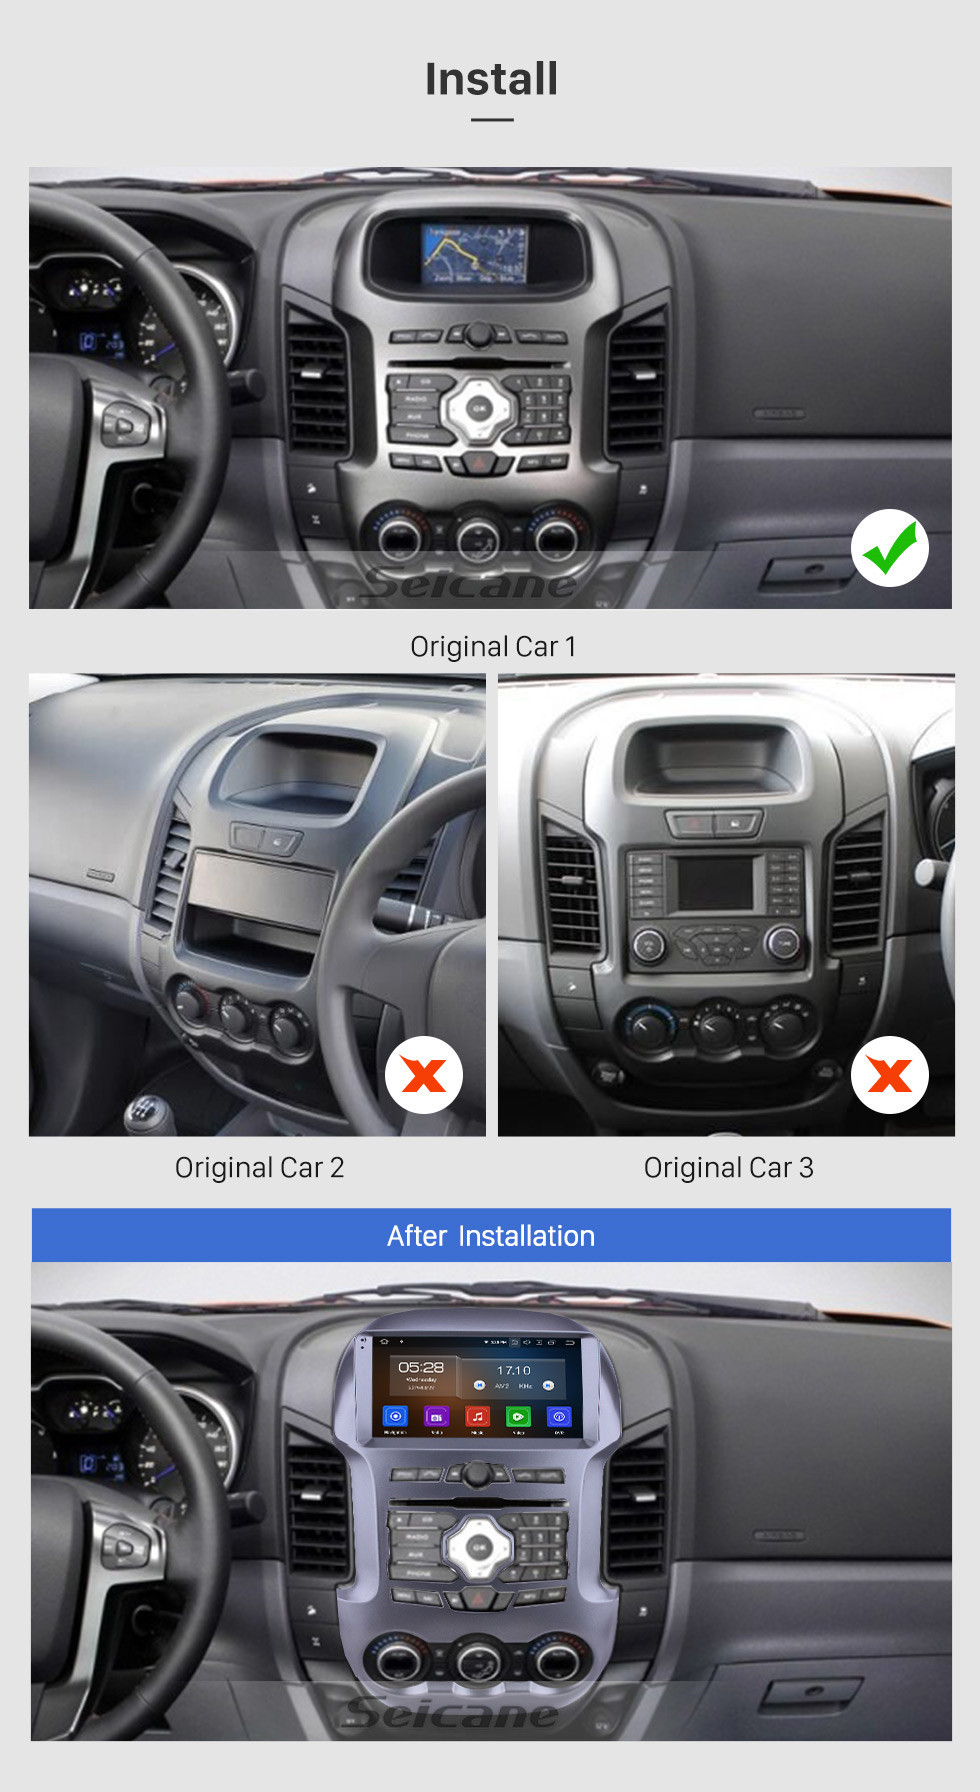 Seicane HD Touchscreen for 2011-2016 Ford Ranger Radio Android 10.0 9 inch GPS Navigation Bluetooth WIFI Carplay support Rear camera